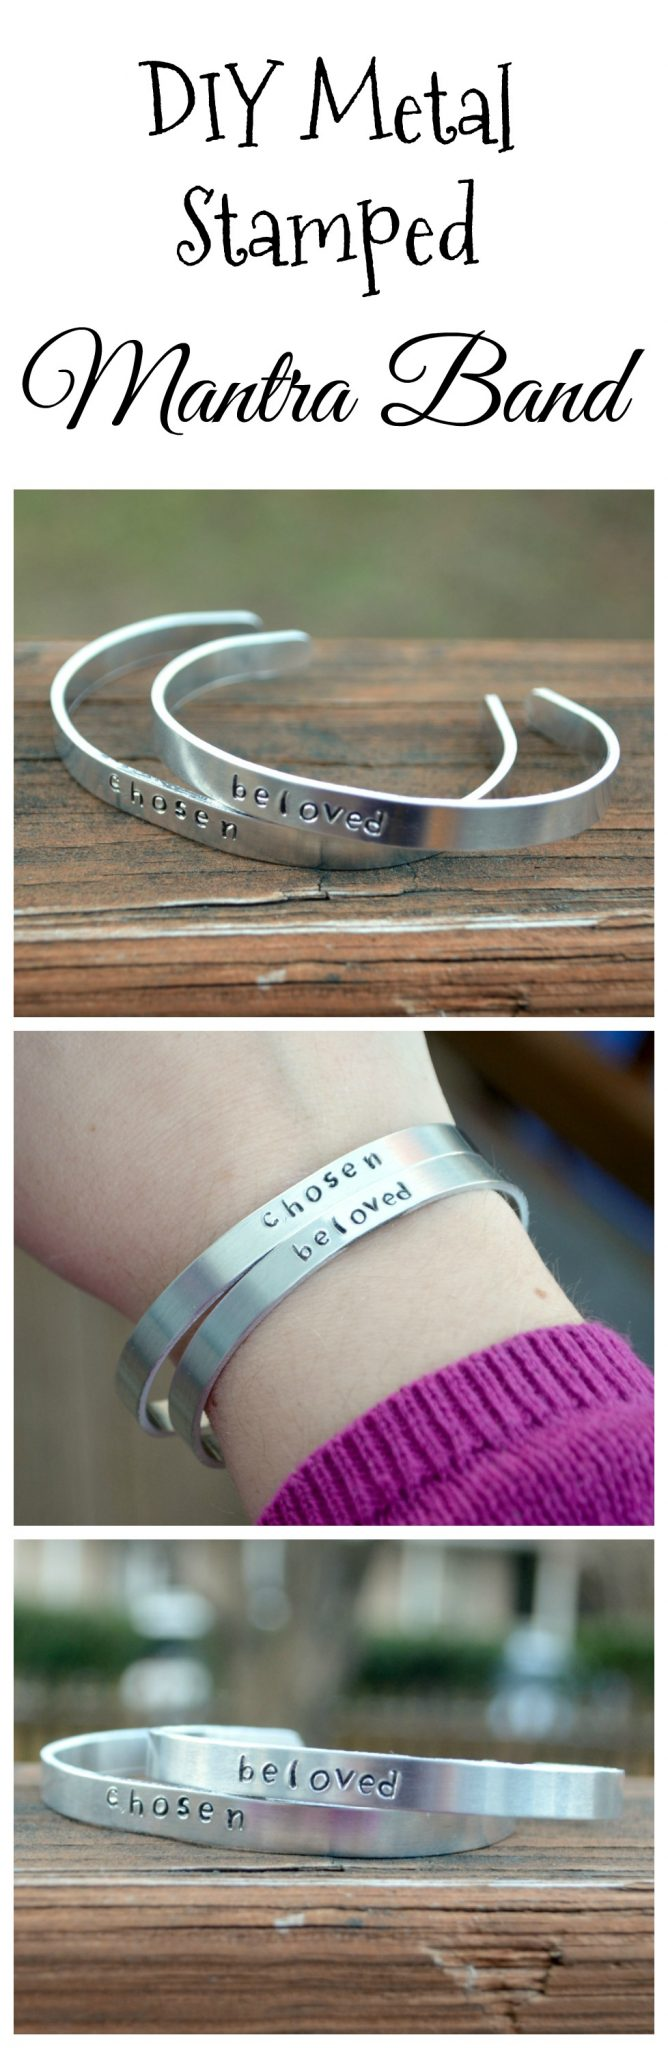 DIY Metal Stamped Mantra Bands